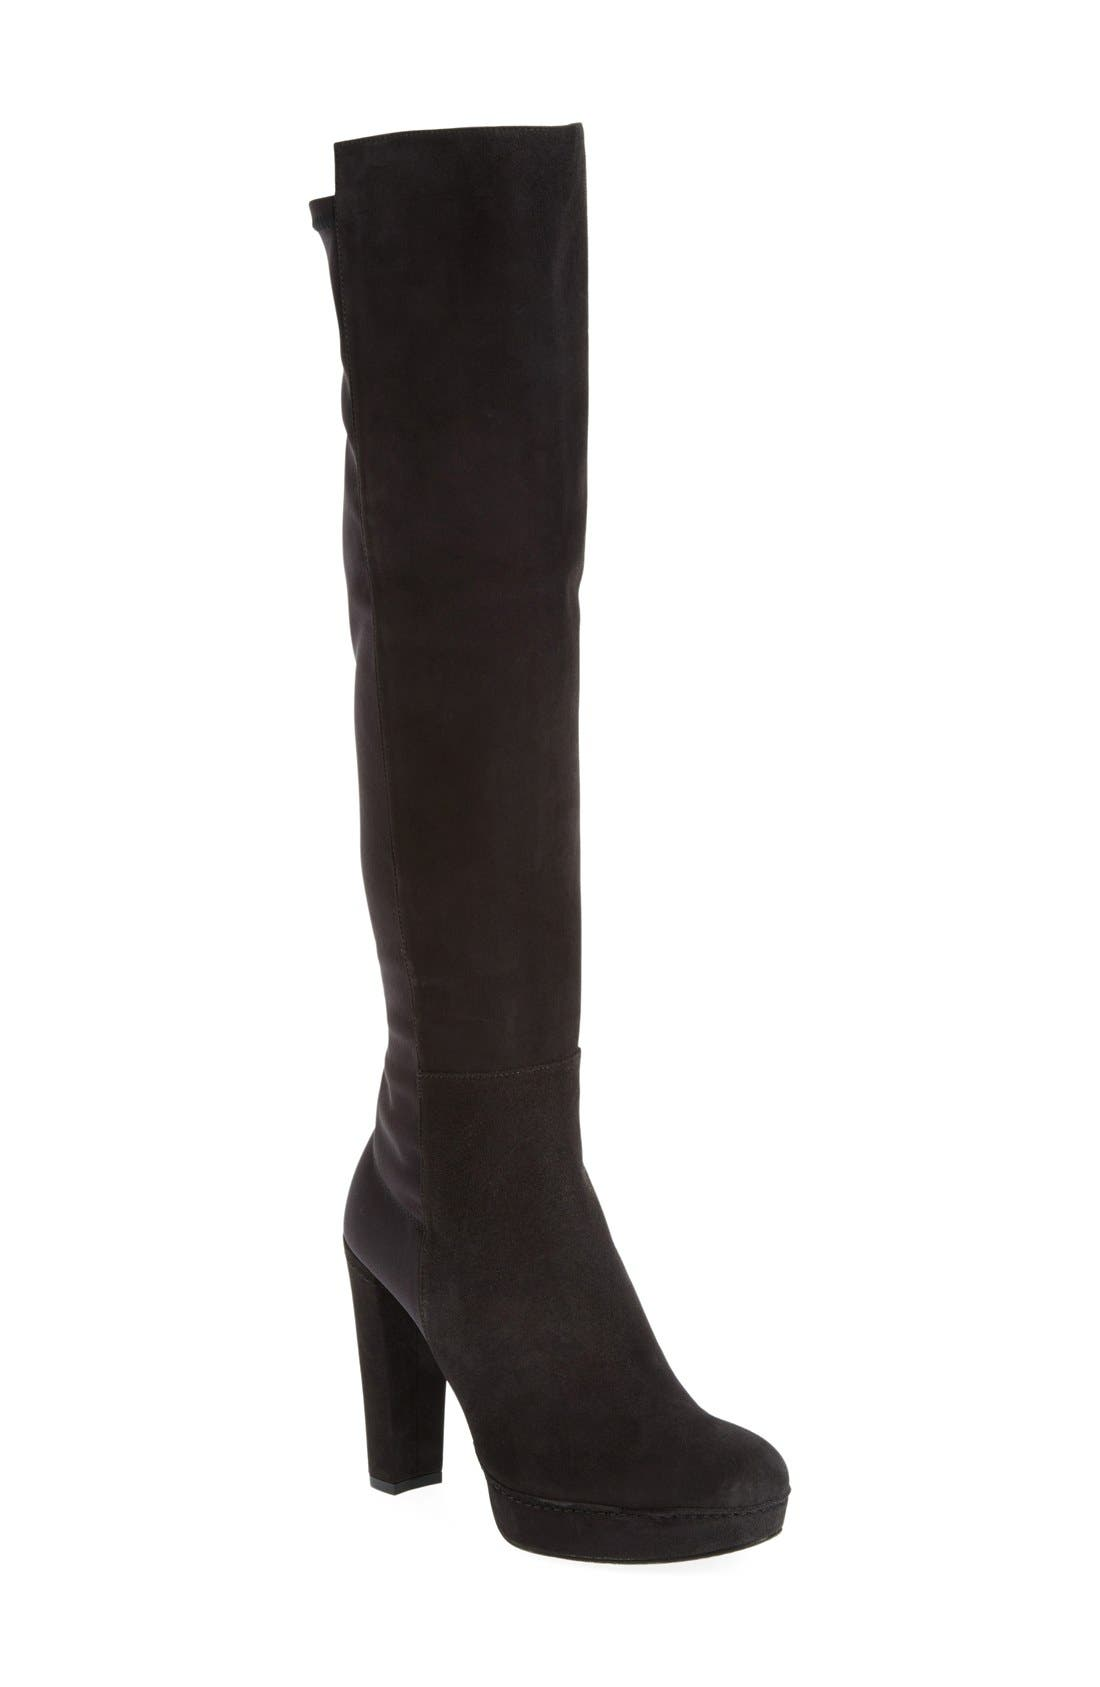 Main Image - Stuart Weitzman 'Demistrong' Over the Knee Boot (Women)